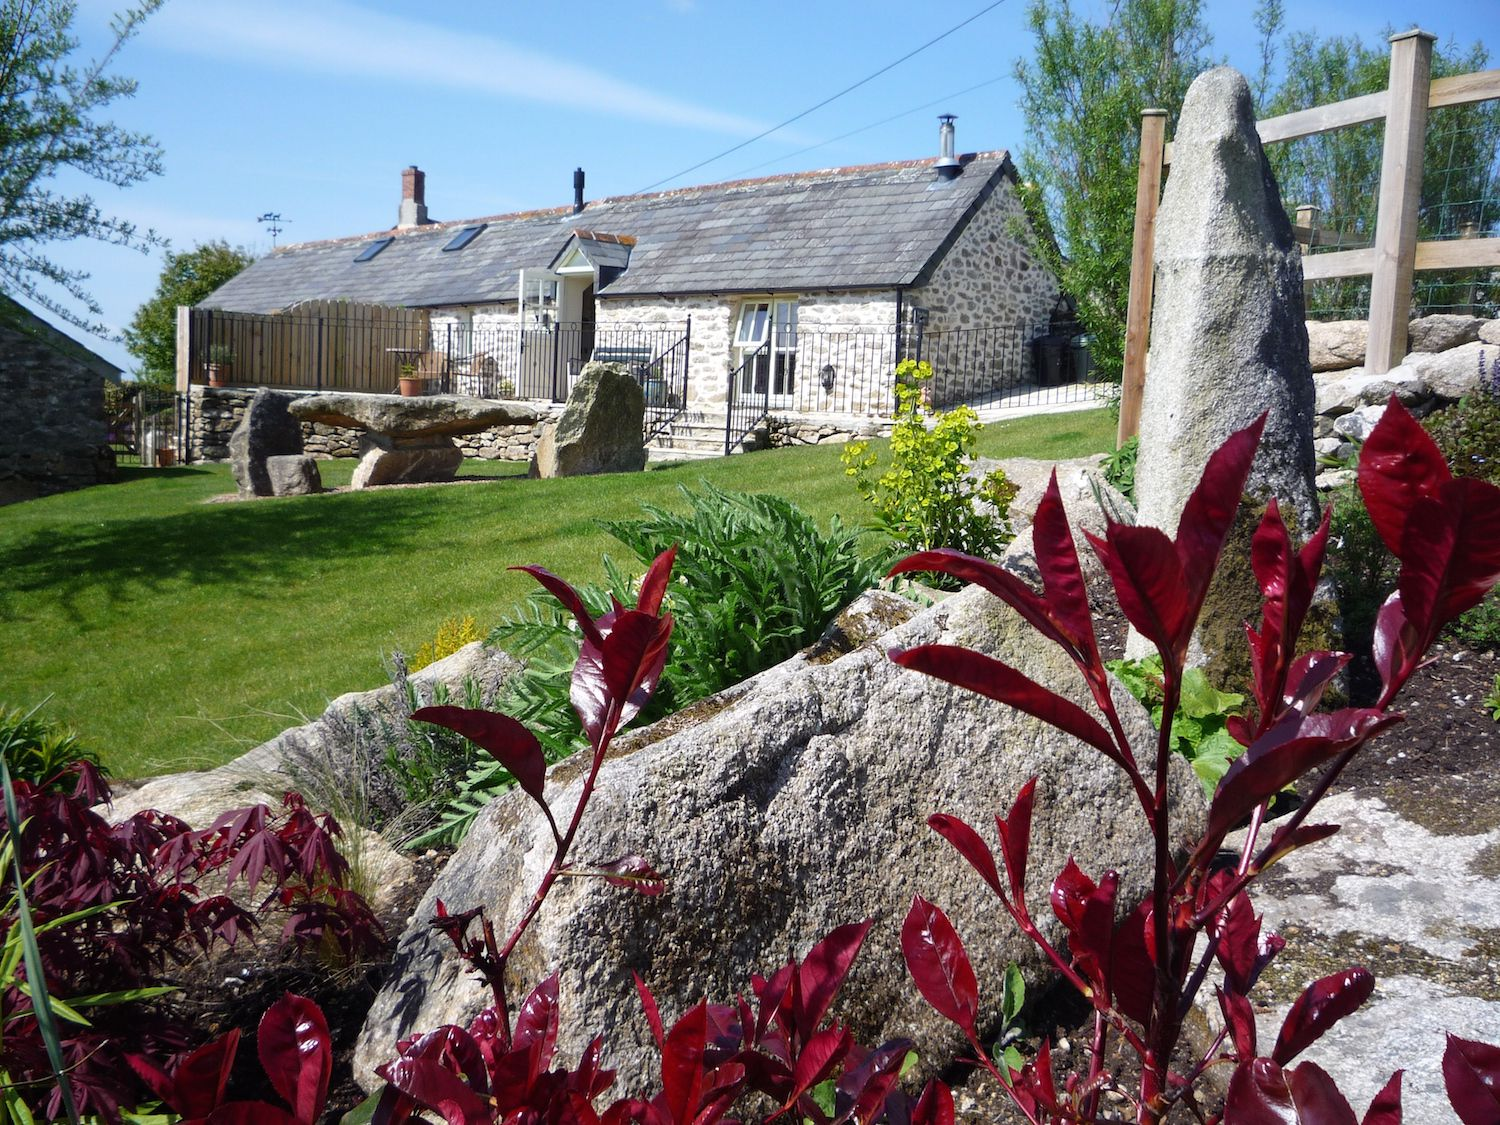 Self-Catering in Wadebridge holidays at Cool Places